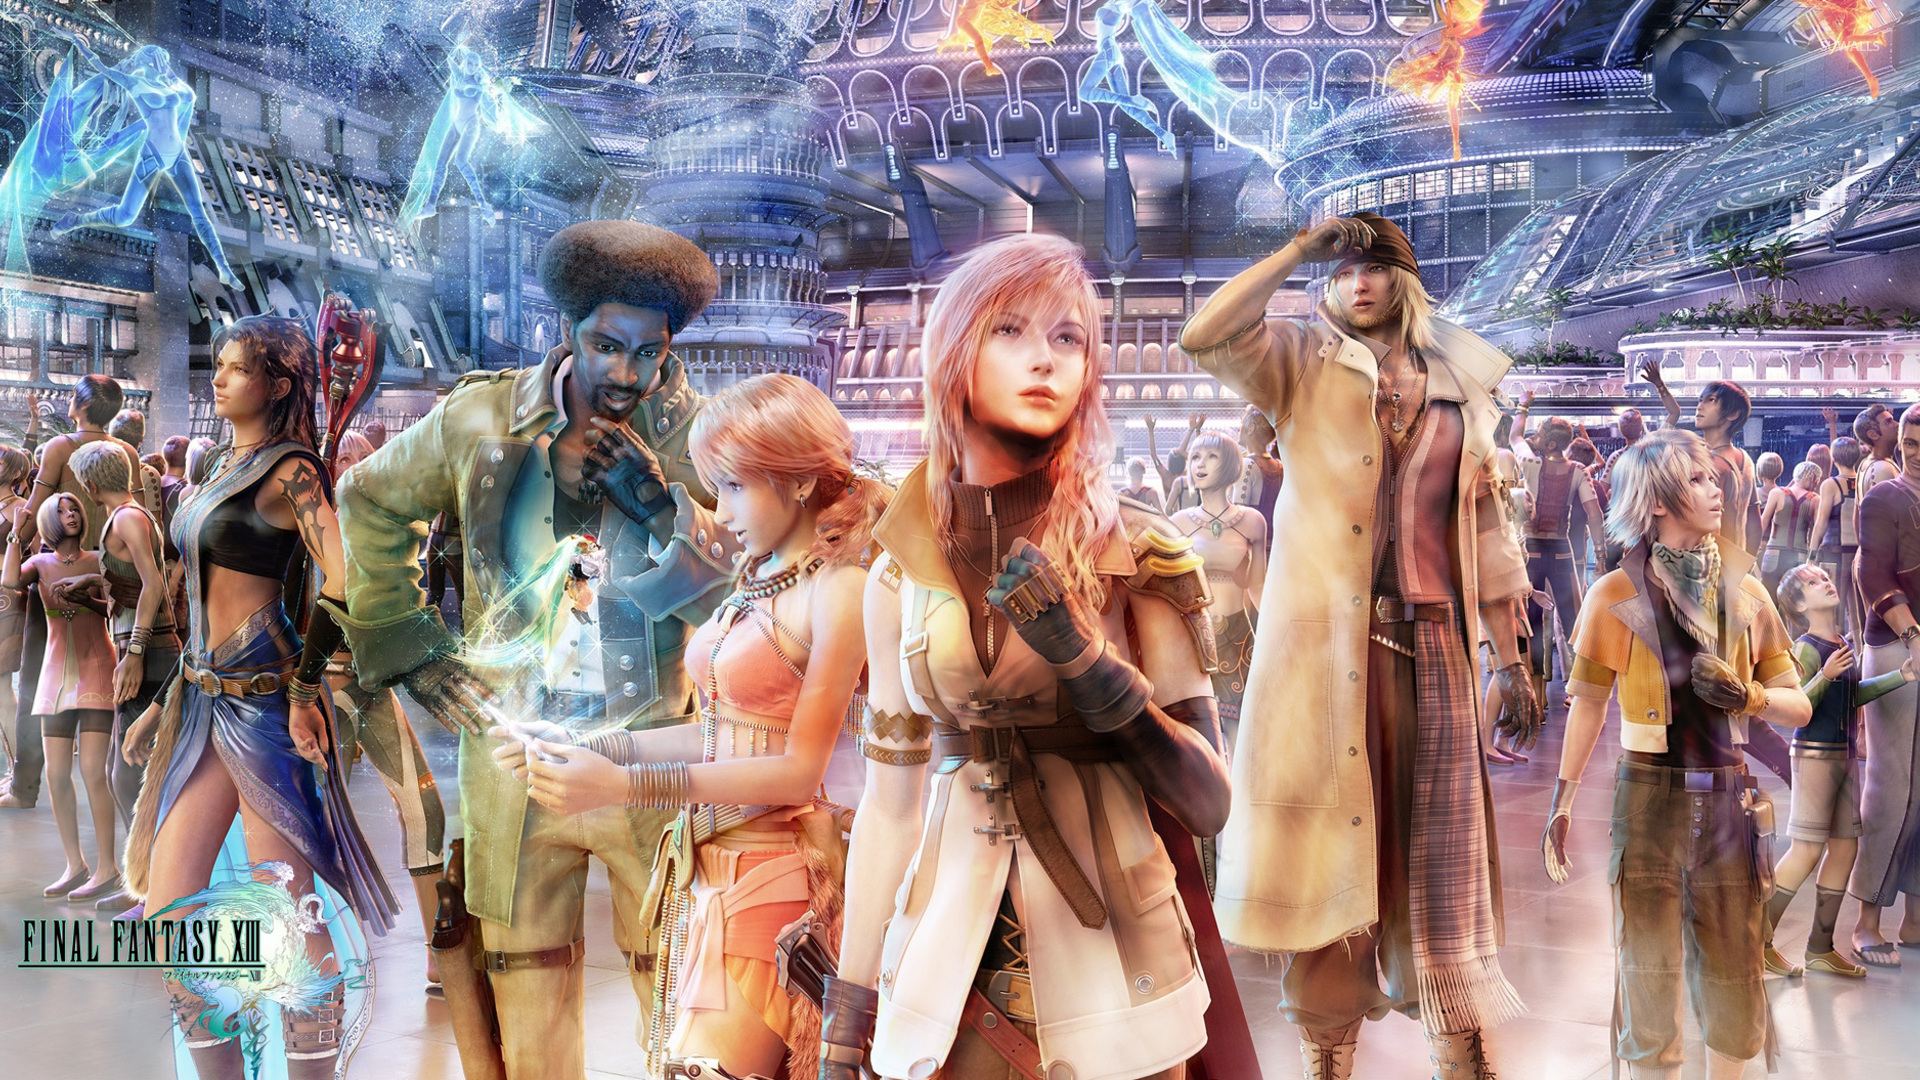 40k Quotes Wallpapers Final Fantasy Xiii Wallpaper Game Wallpapers 2490